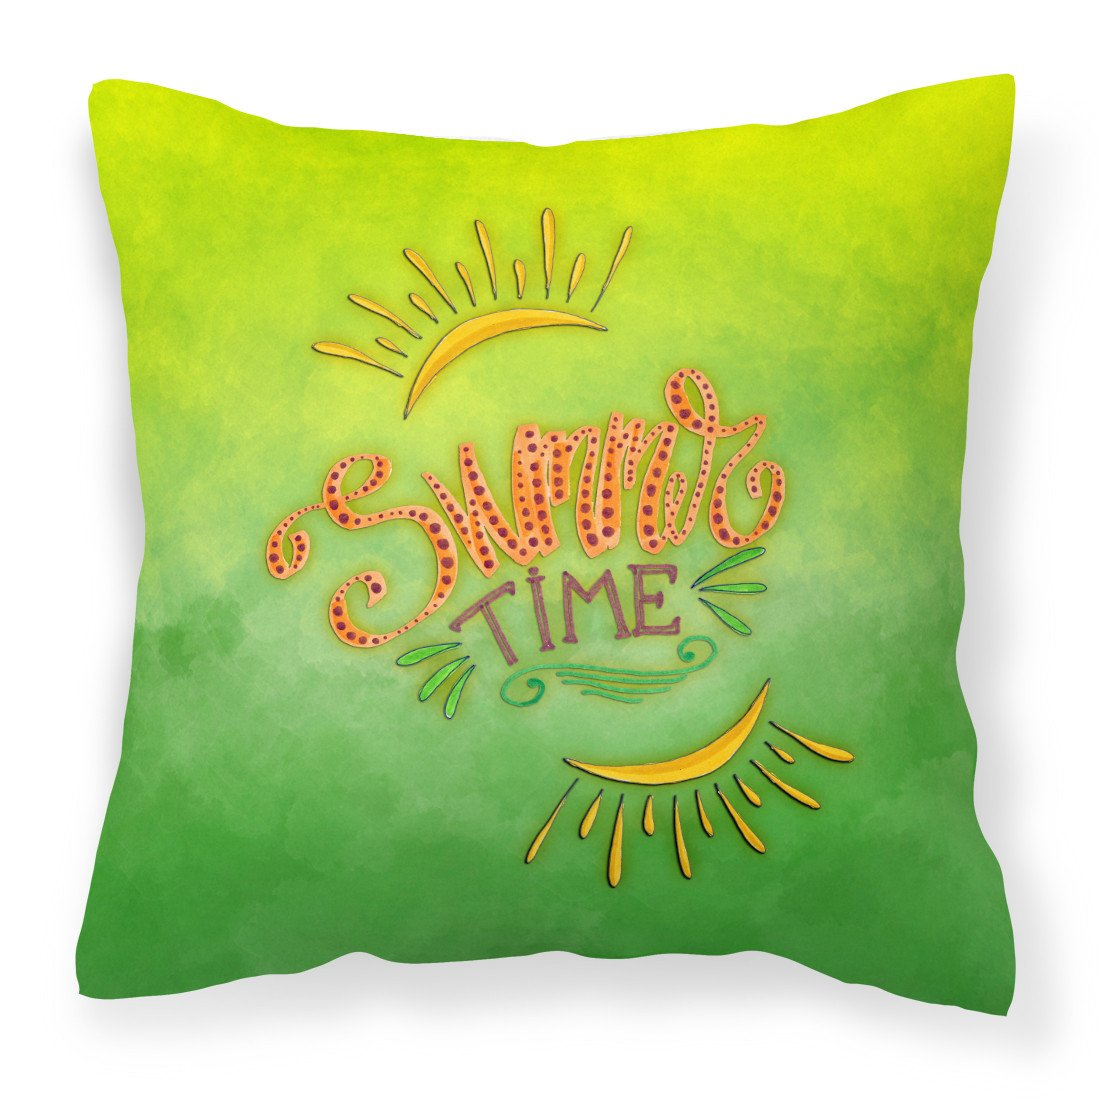 Summer Time Fabric Decorative Pillow BB7453PW1818 by Caroline's Treasures